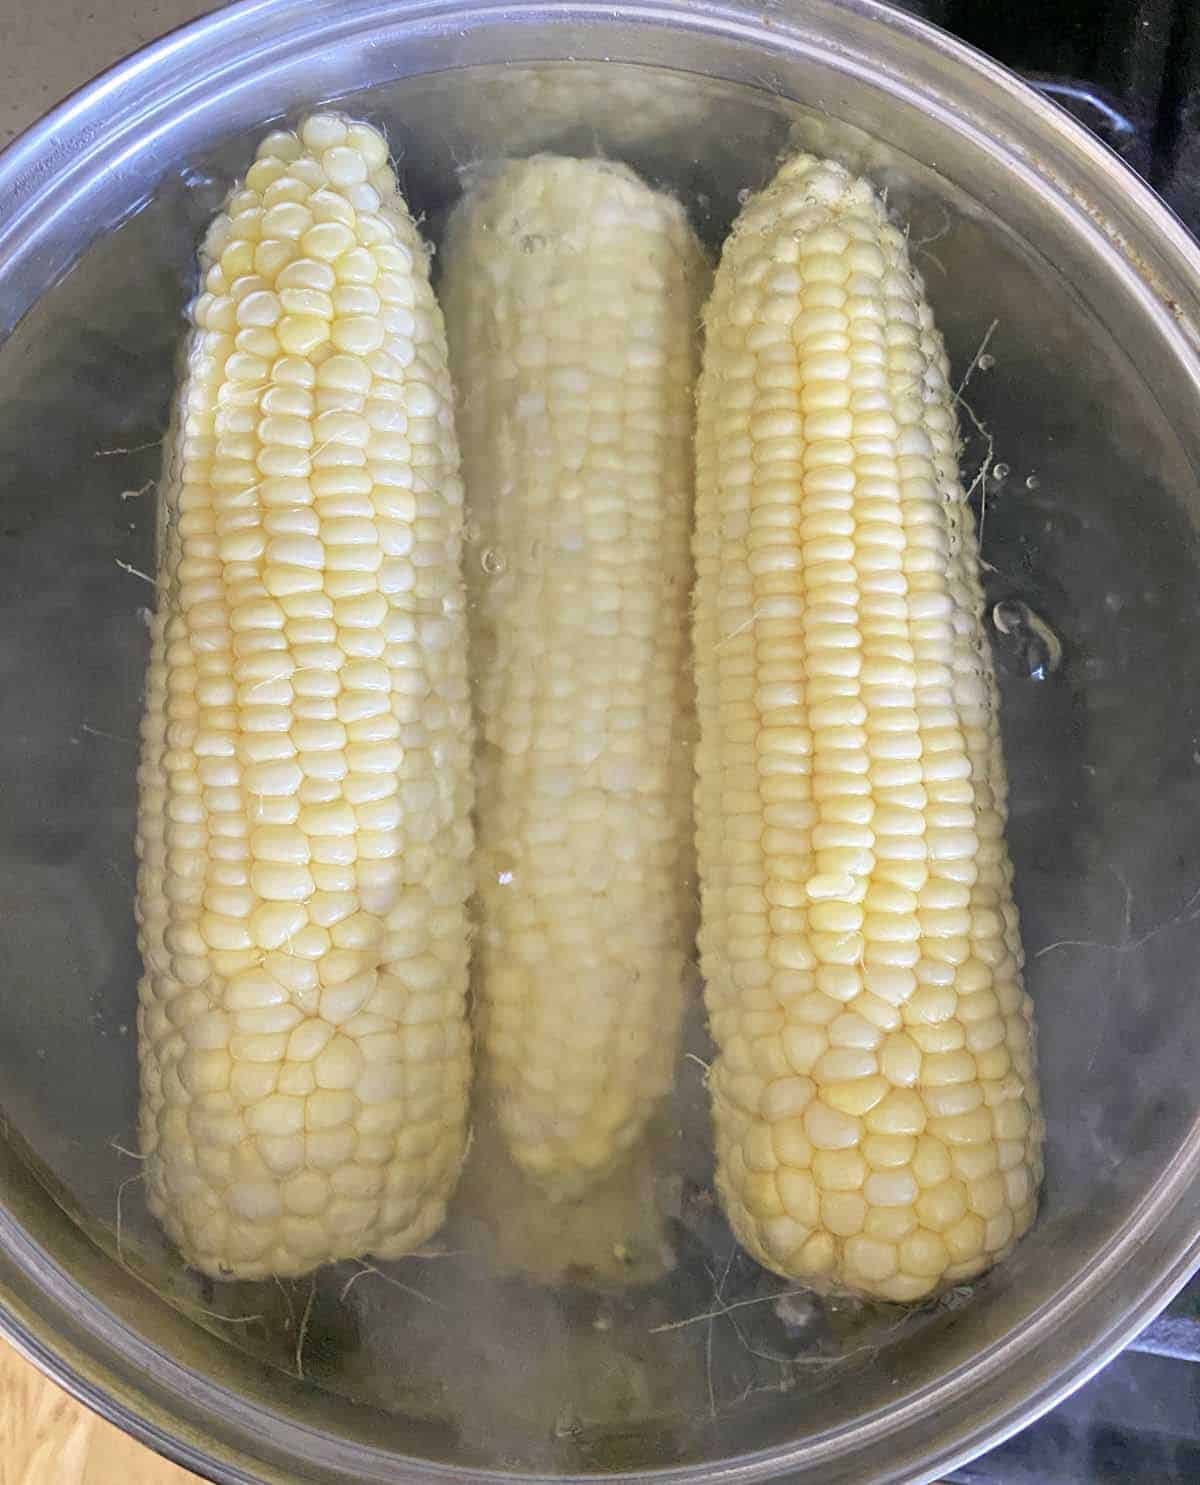 Six ears of corn cooking in a large pot of boiling water